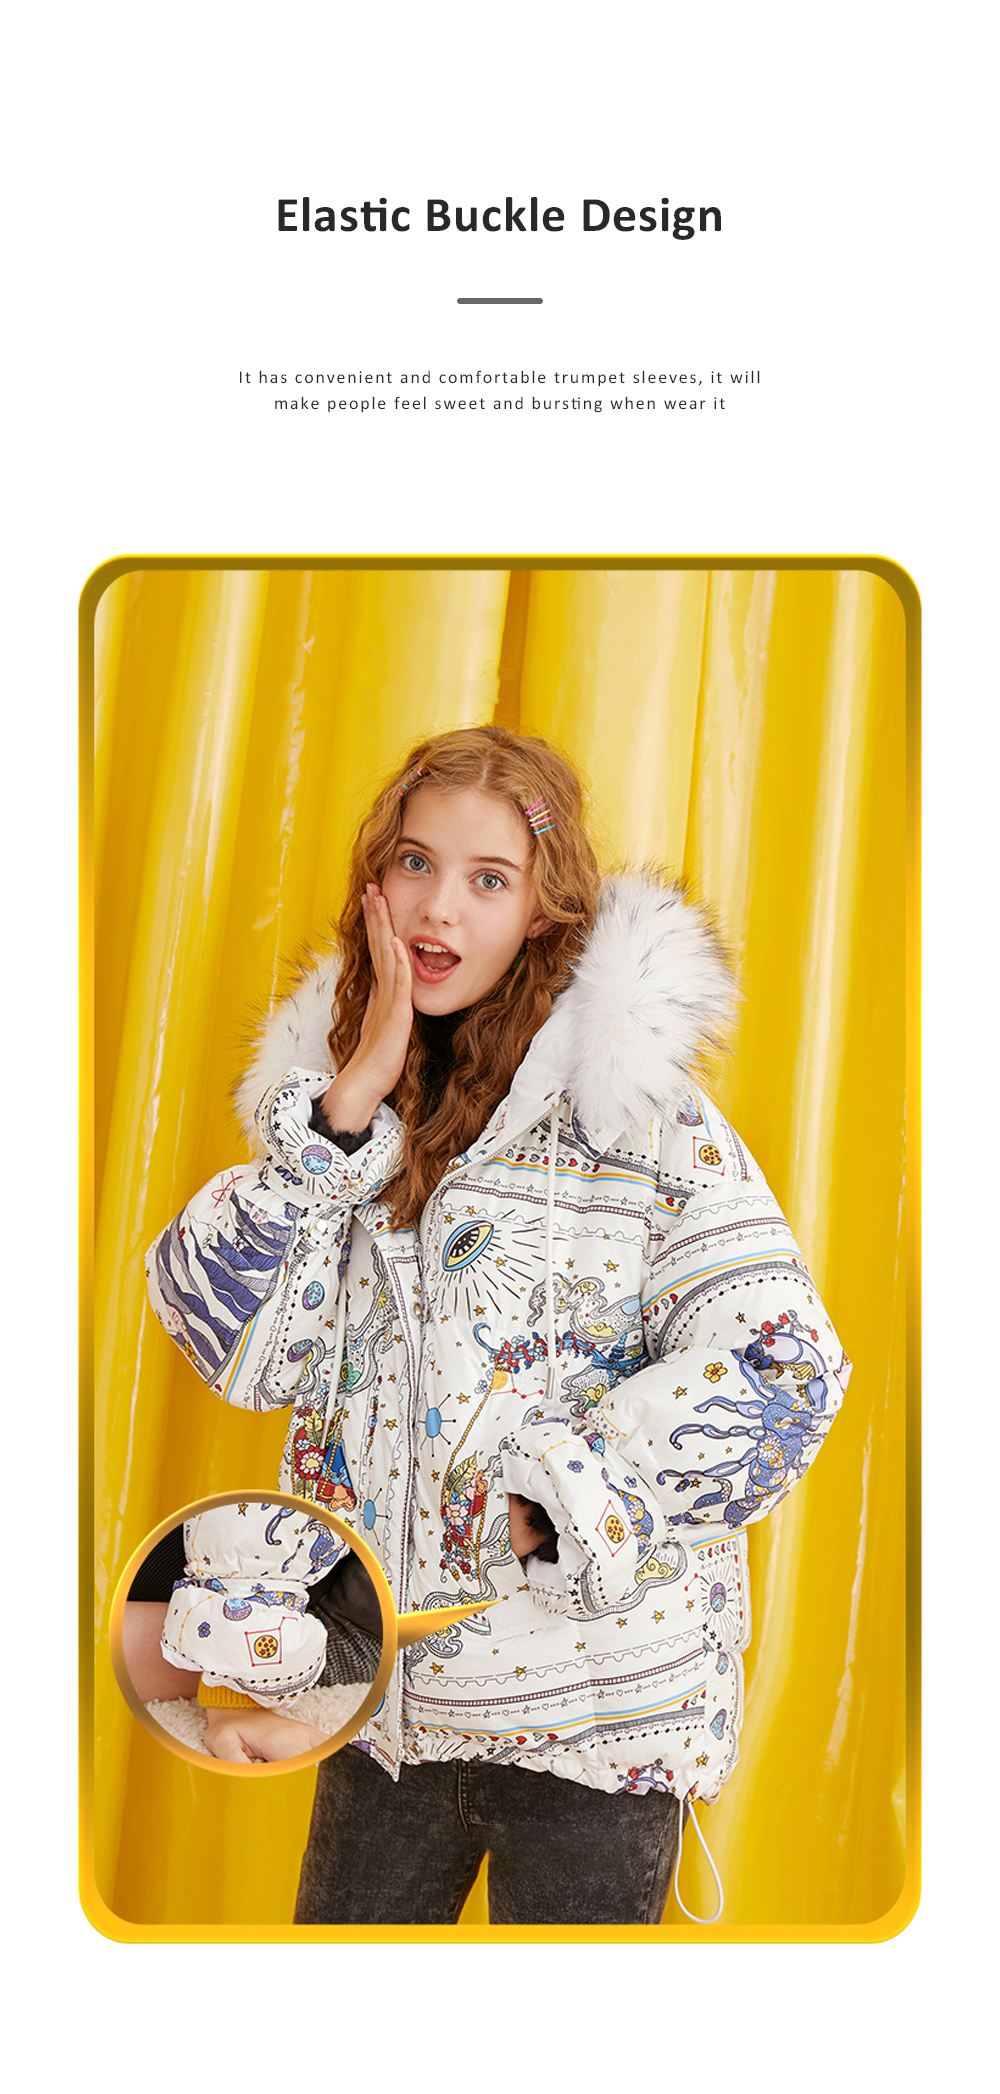 ELFSACK Autumn Winter New Women's Cotton Printed Graffiti Scorpio Cotton Coat Down Jacket With Hooded Fur Collar 3